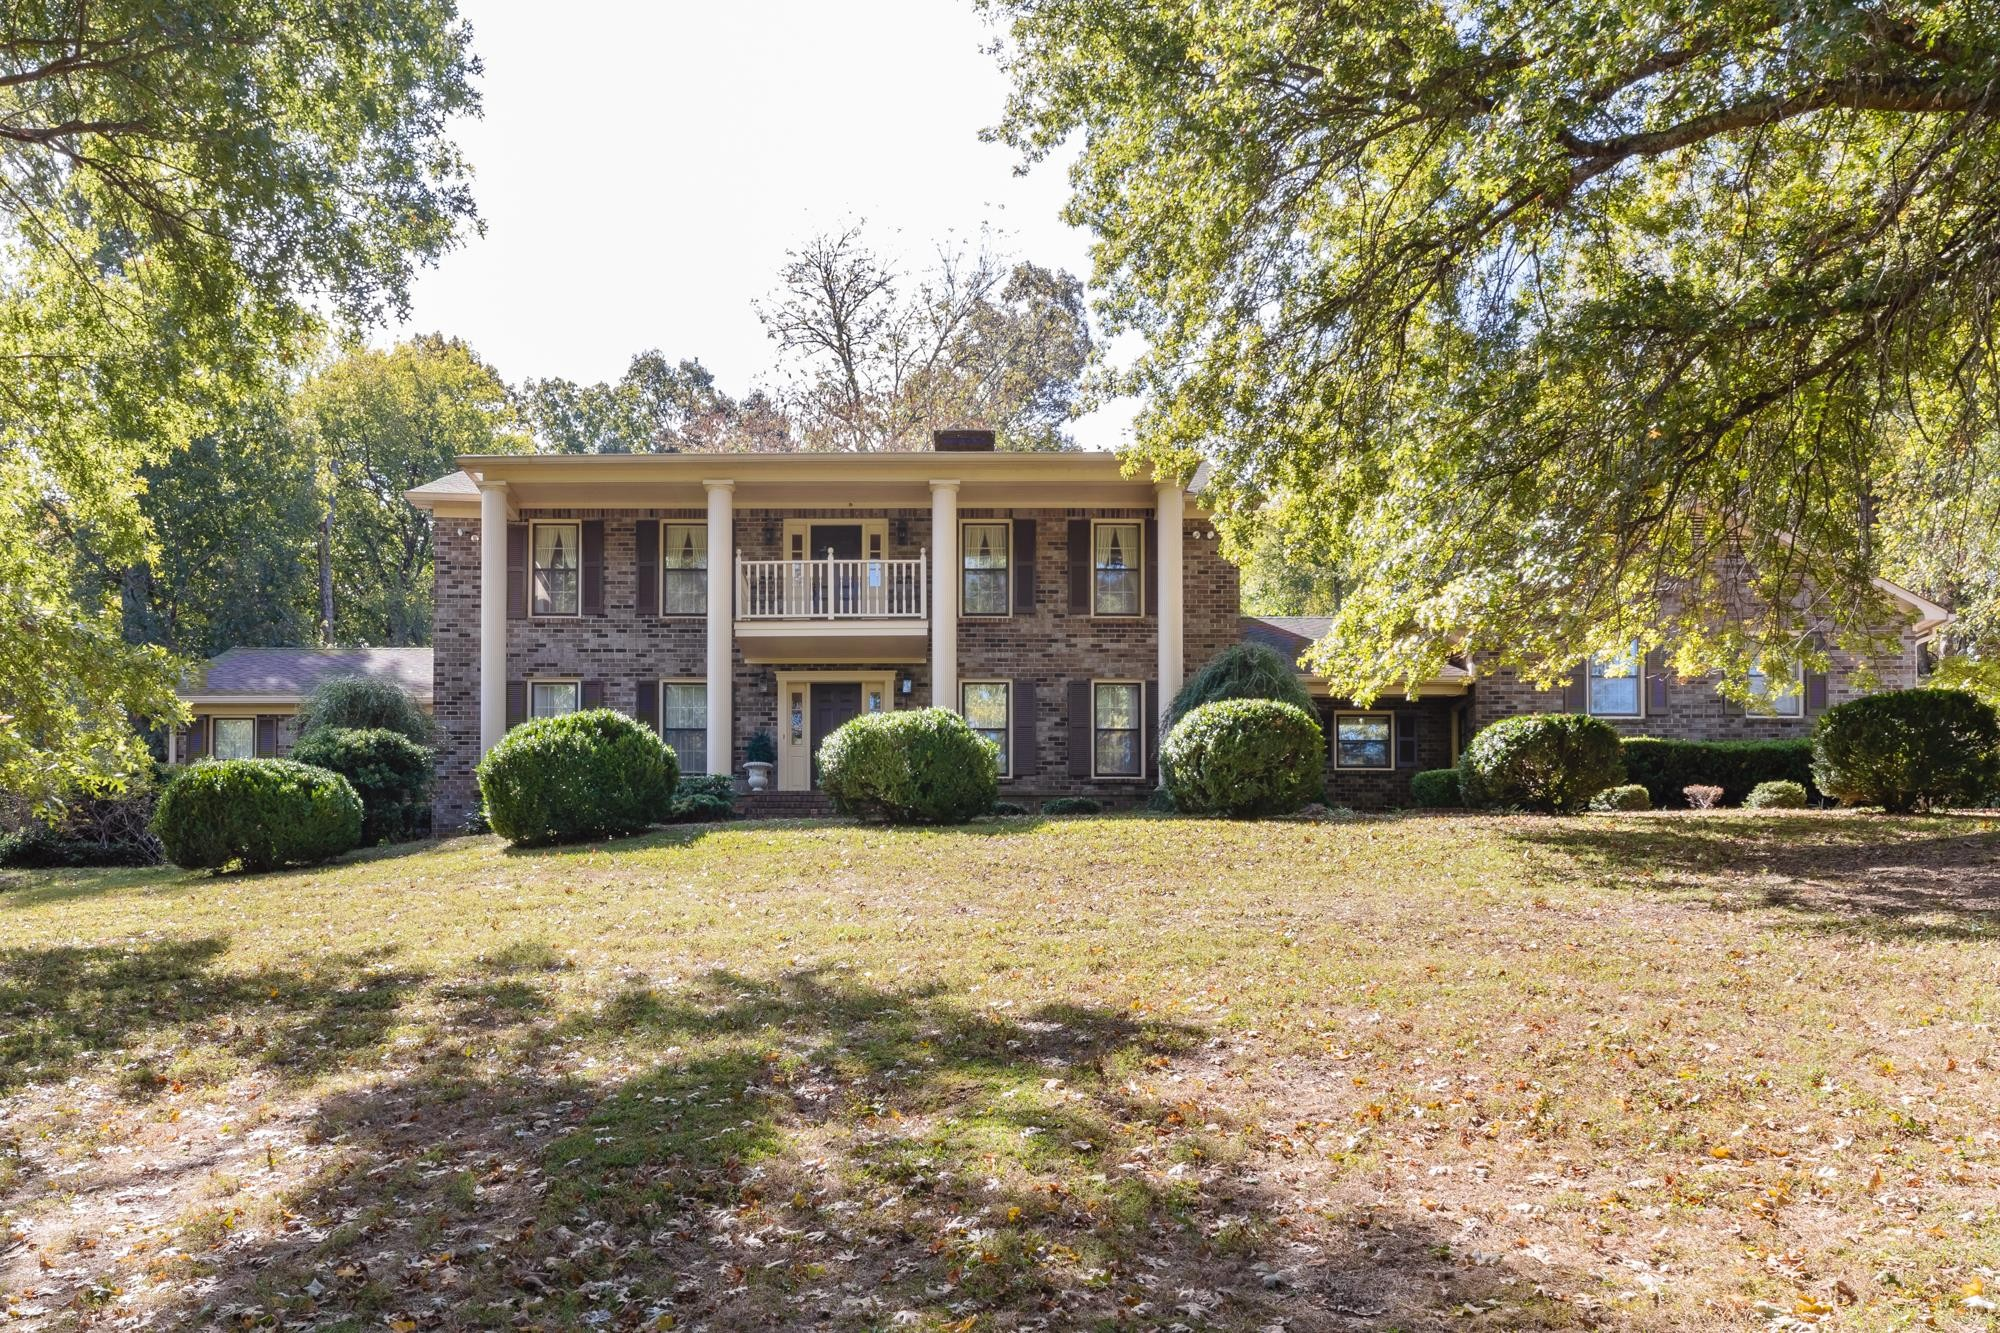 1880 Pinkston St, Lewisburg, TN 37091 - Lewisburg, TN real estate listing